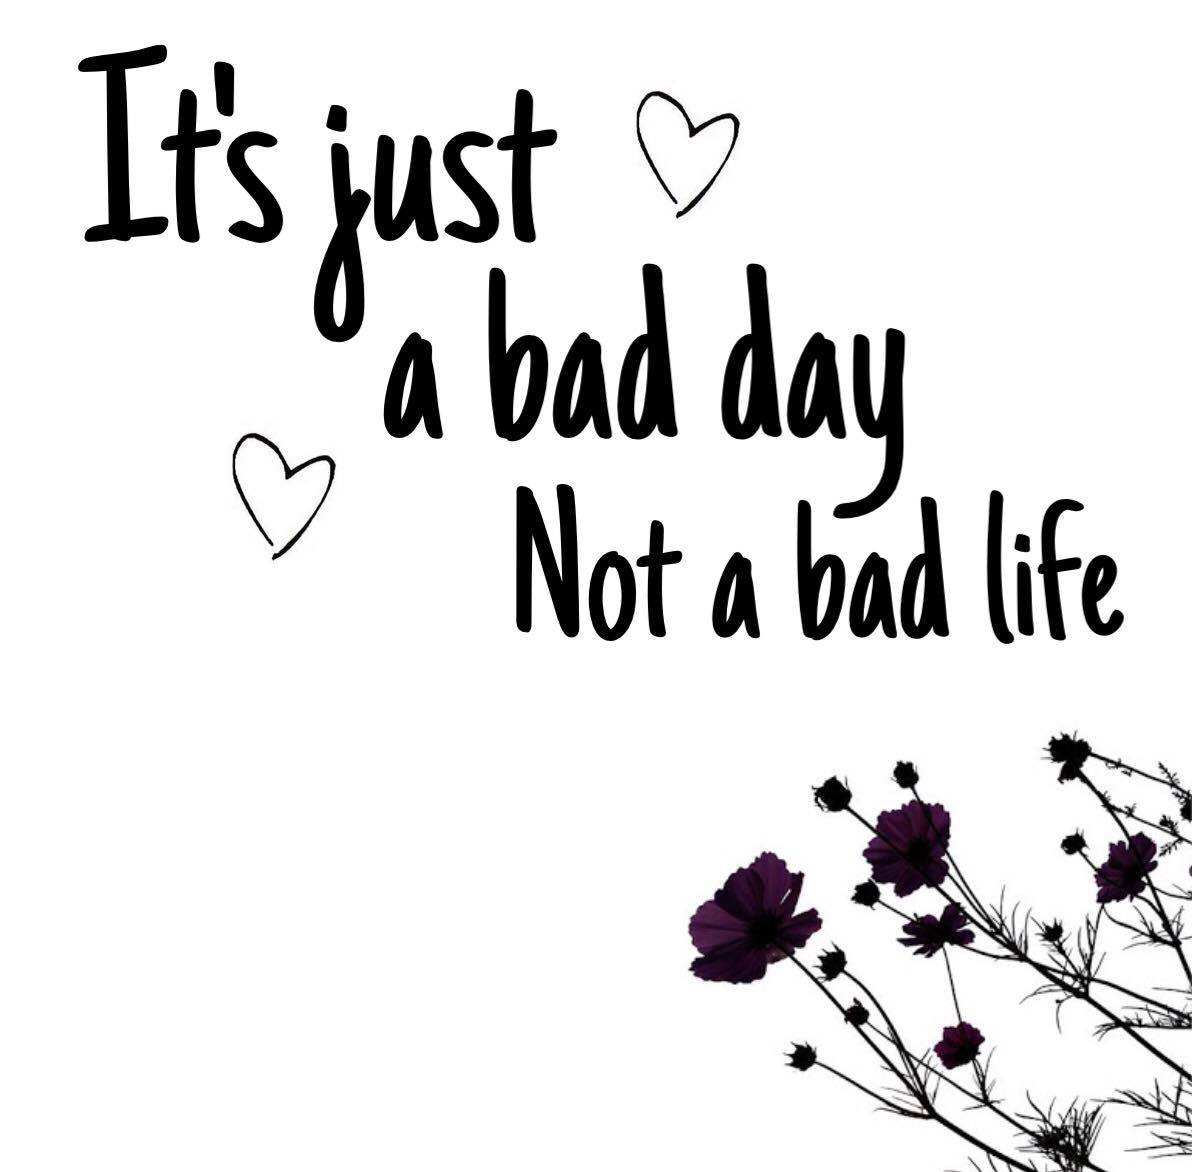 IT'S JUST A BAD DAY, NOT A BAD LIFE…